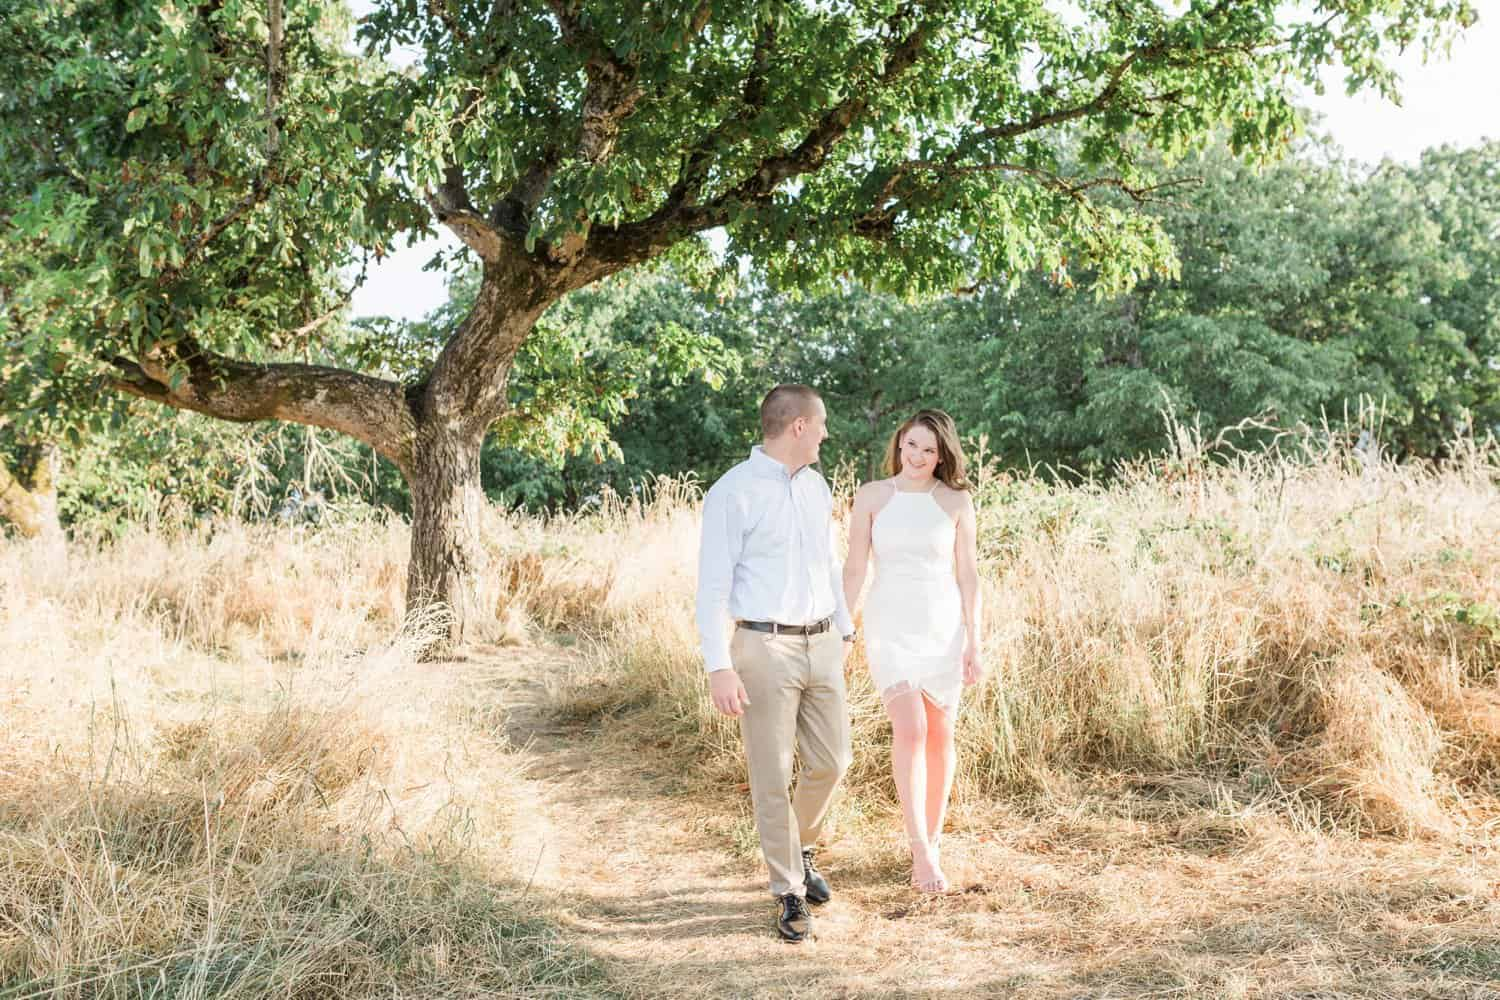 Oregon Wedding Photographer takes candid outdoor engagement photos.